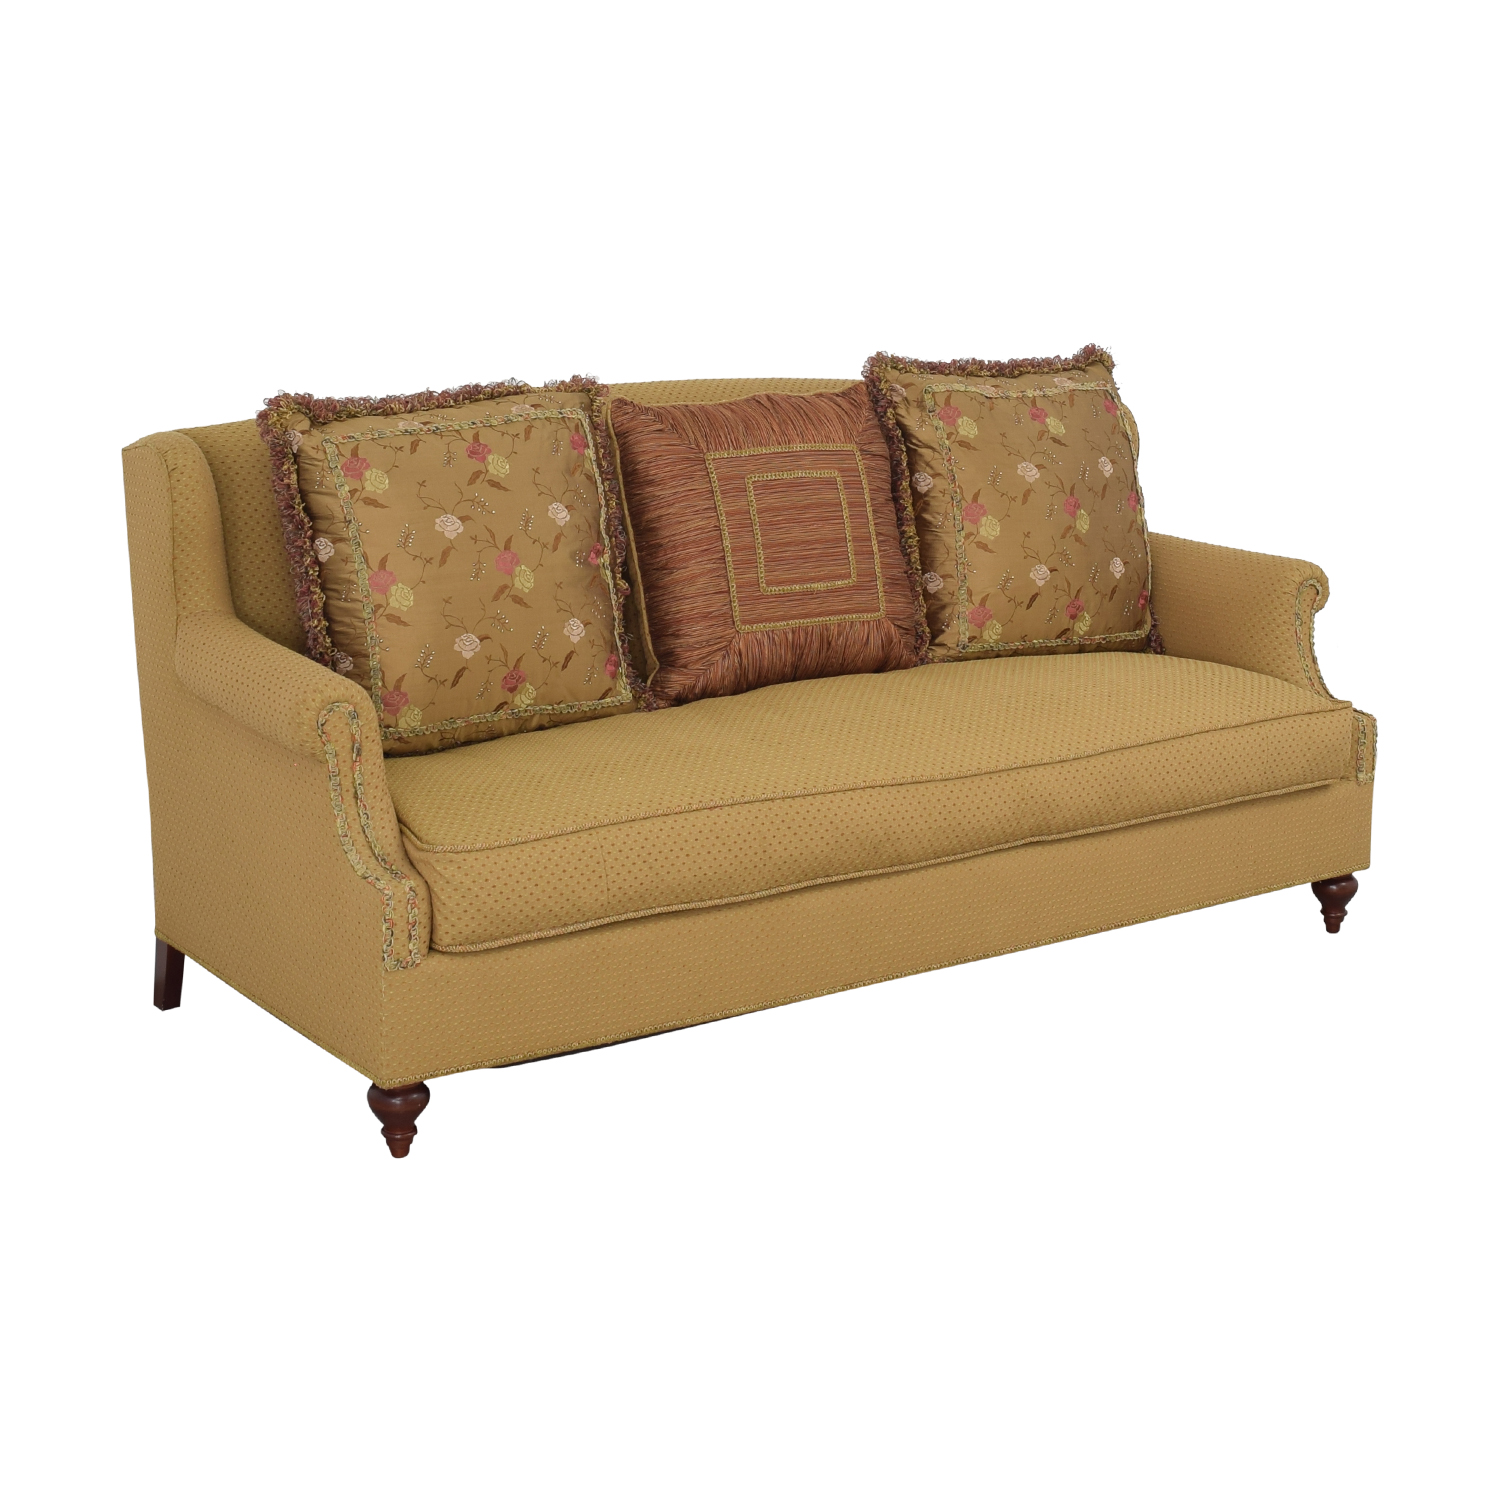 shop Domain Home Victorian Style Ember Sofa Domain Home